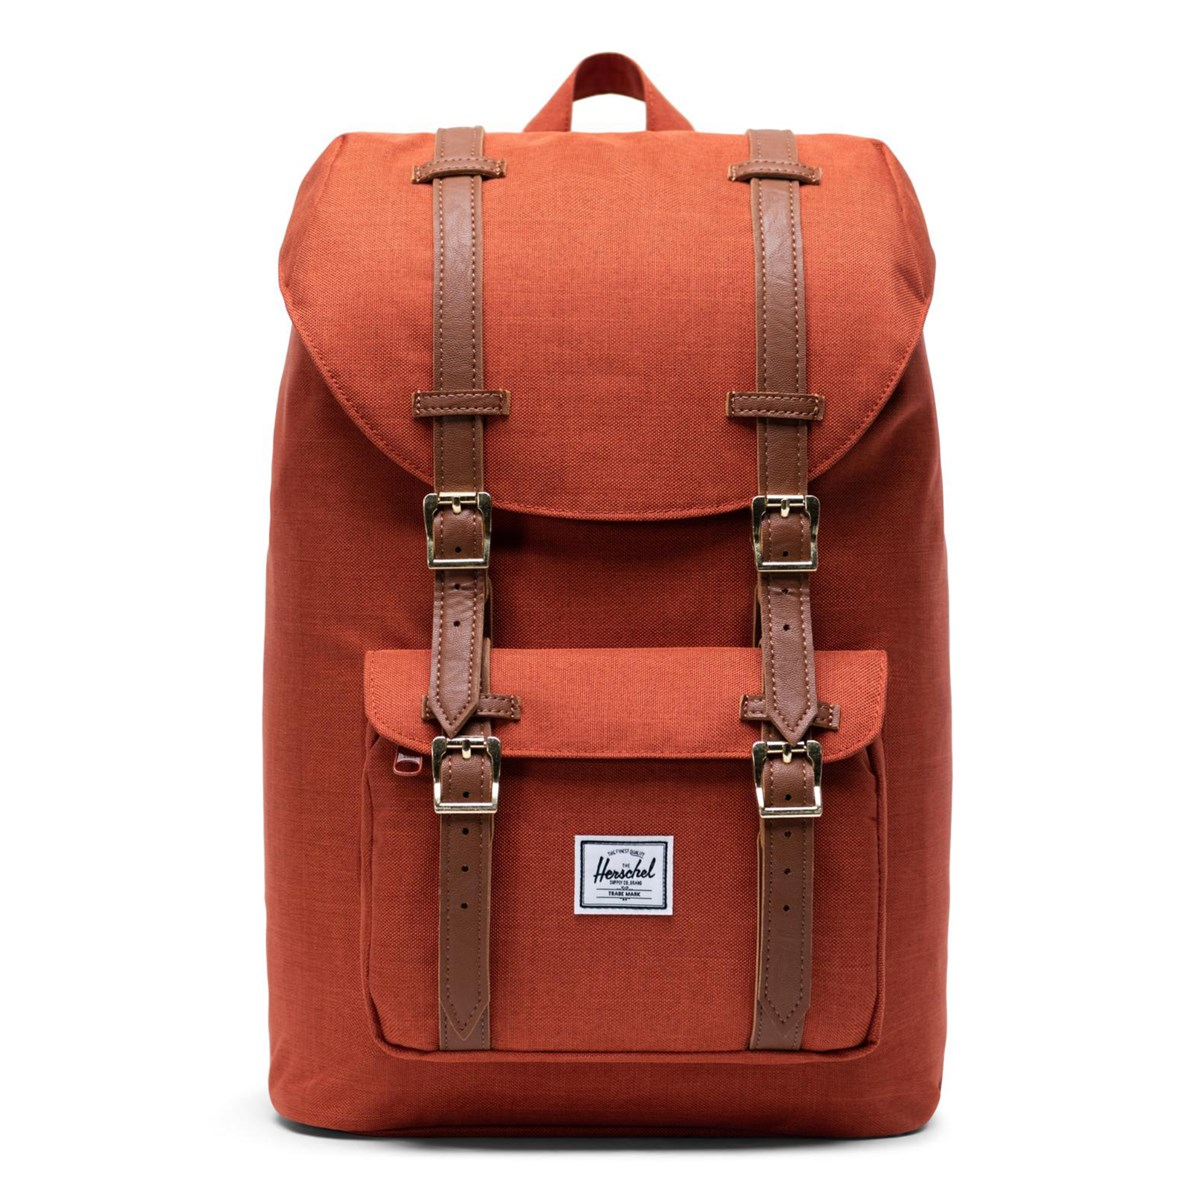 Sac à dos Little America Mid Volume orange foncé